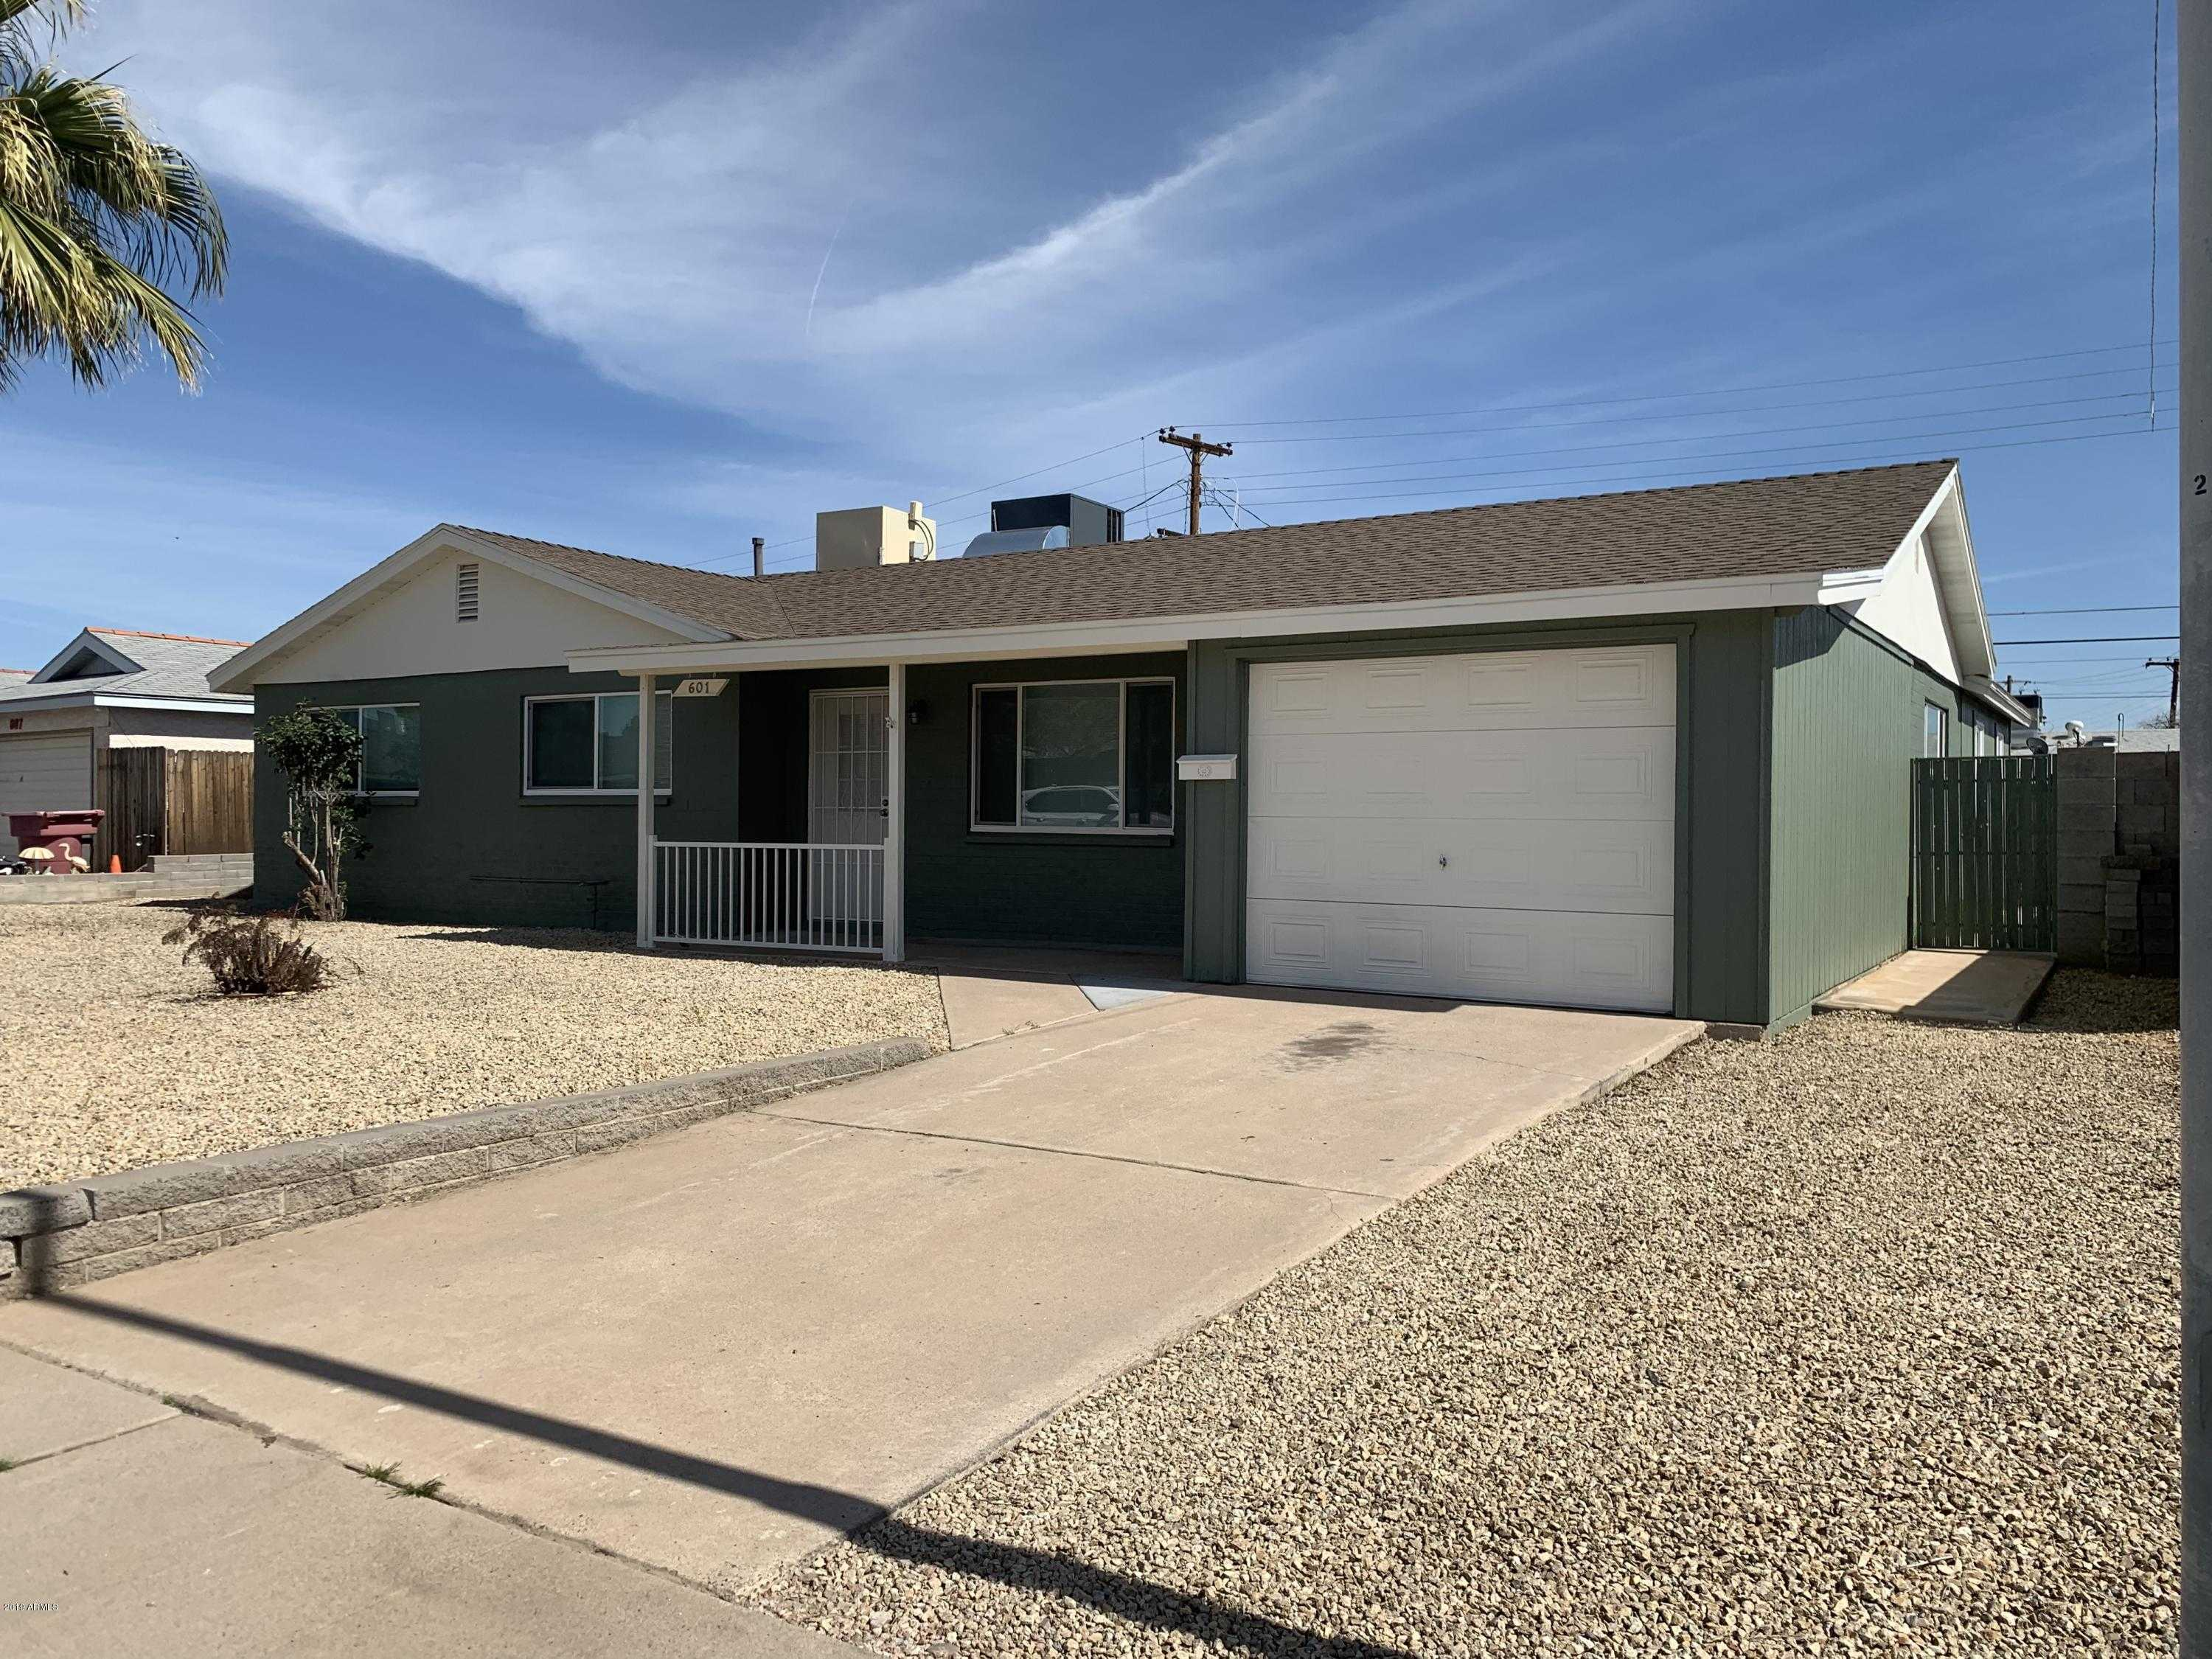 $2,120 - 4Br/2Ba - Home for Sale in New Papago Parkway 13 Lots 779-912 & Tr J, Scottsdale